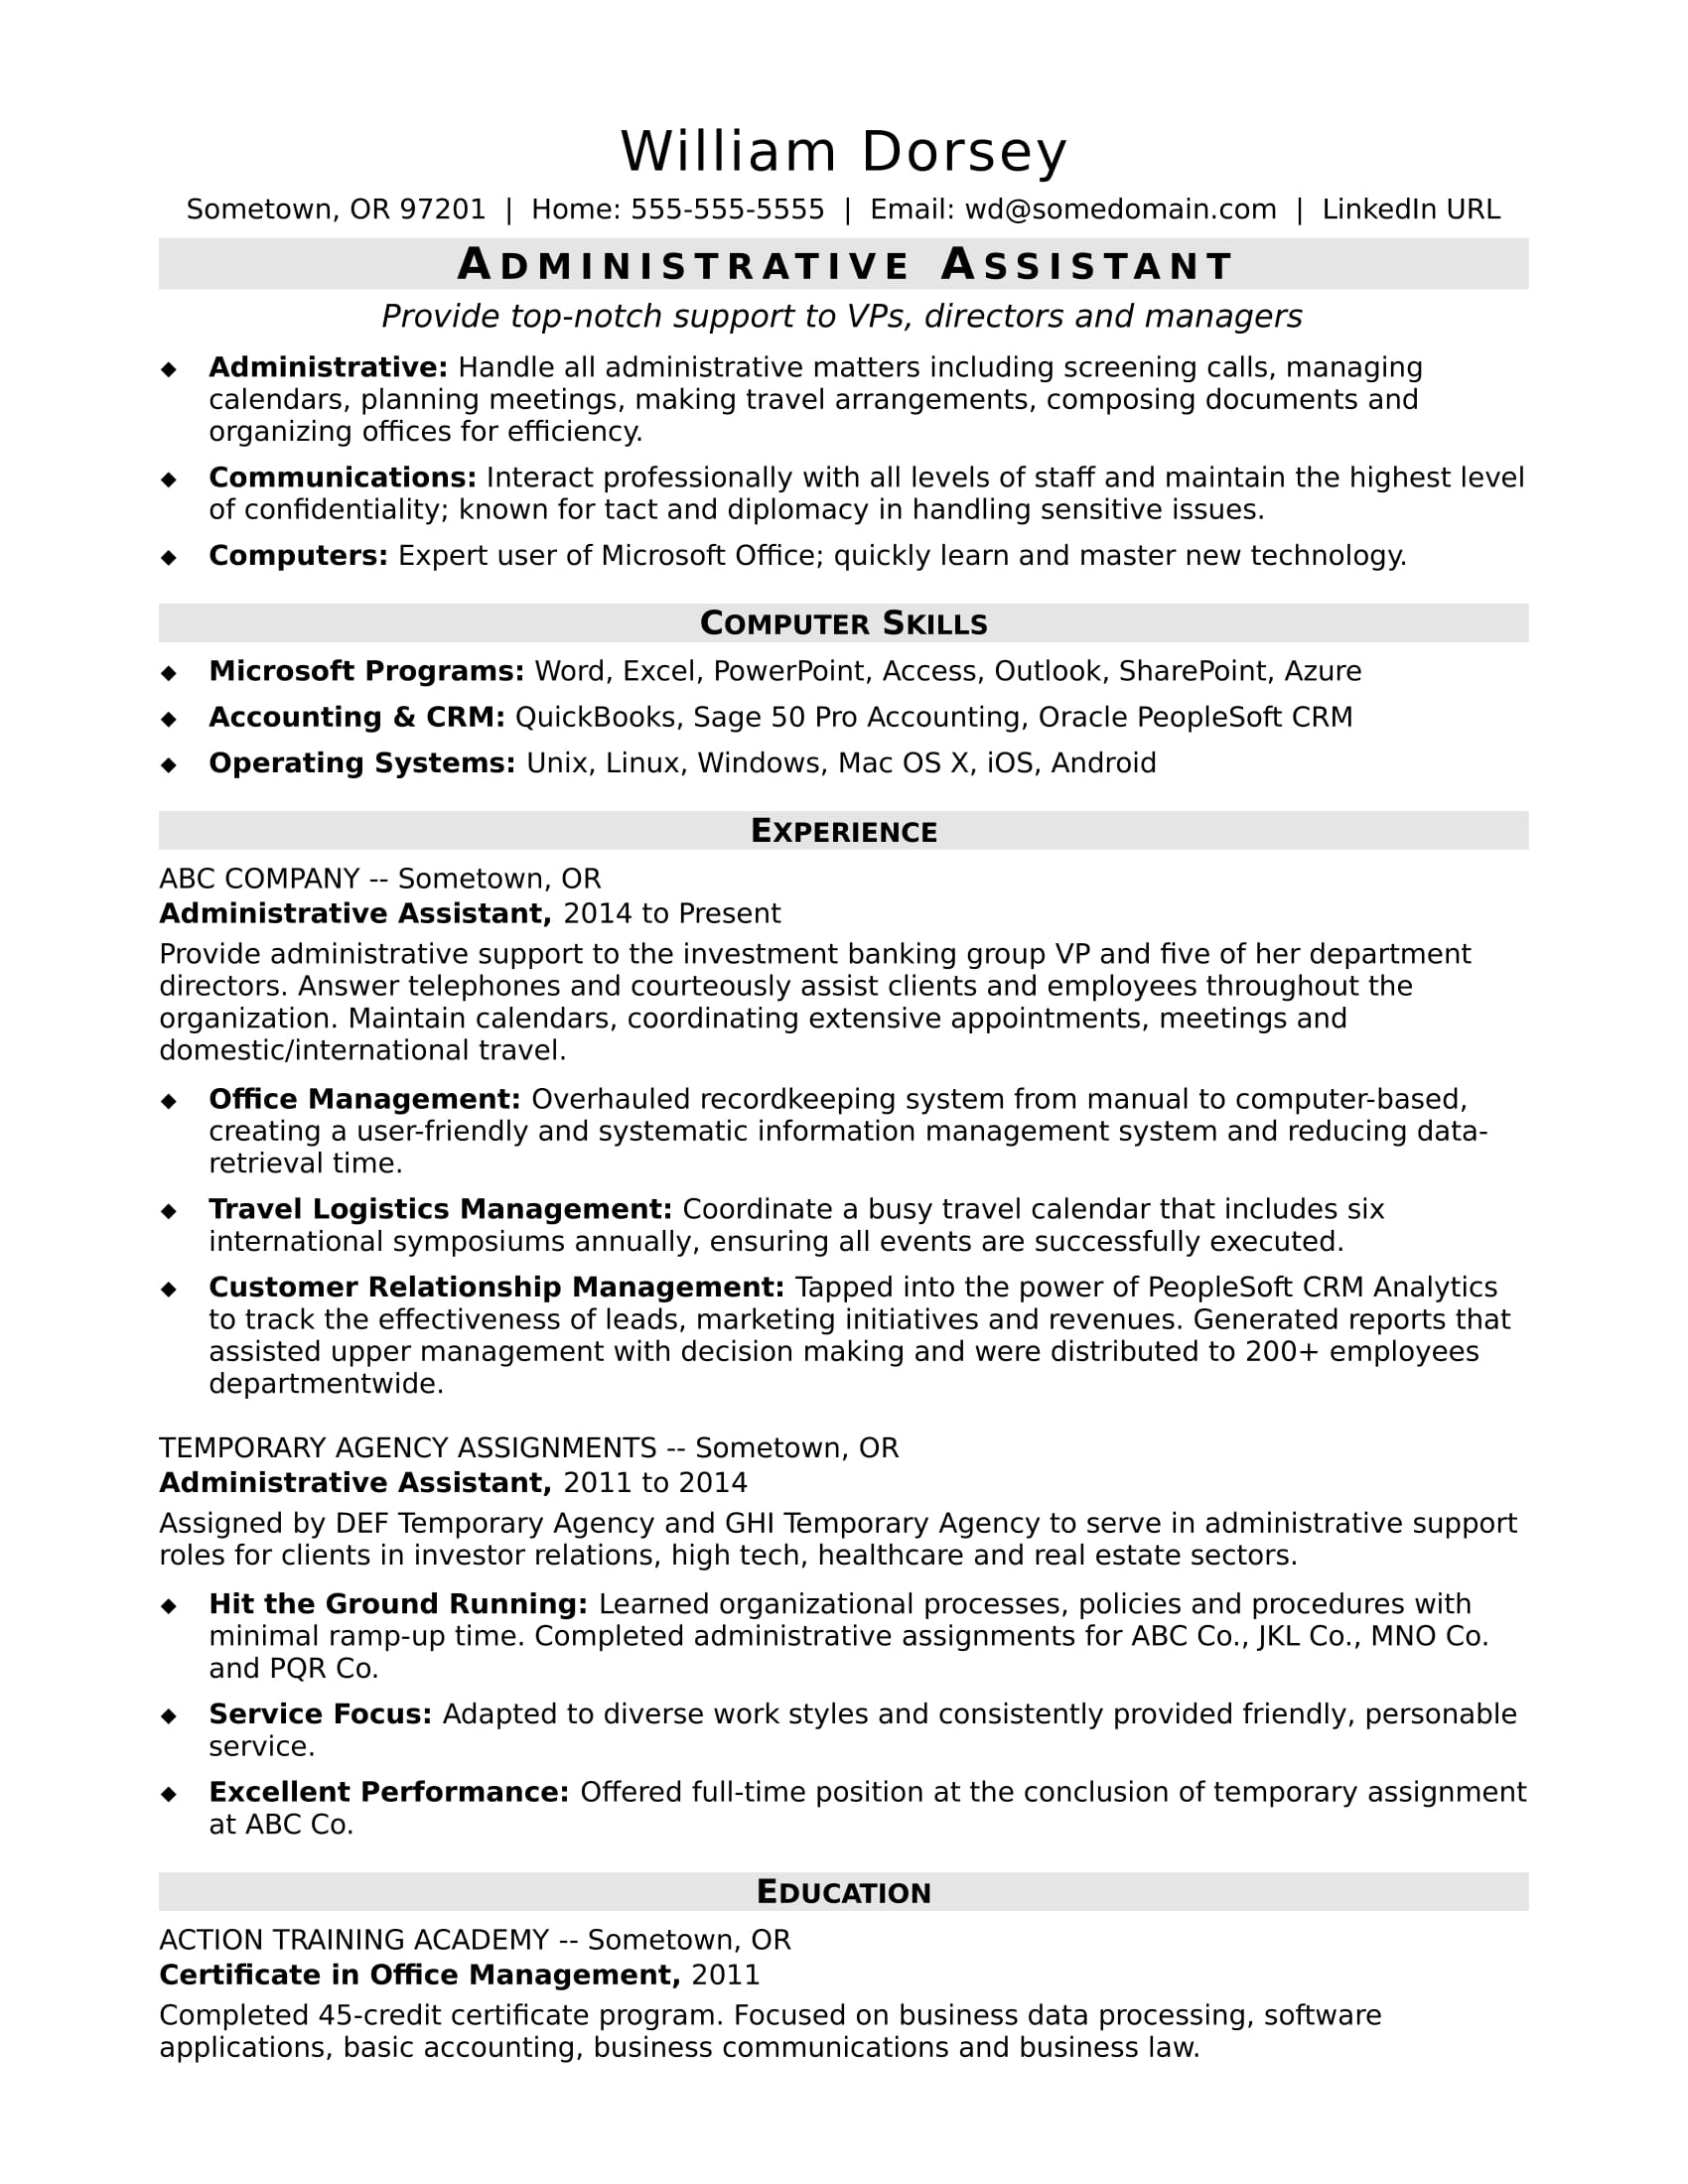 Writing Professional Administrative Assistant Resume